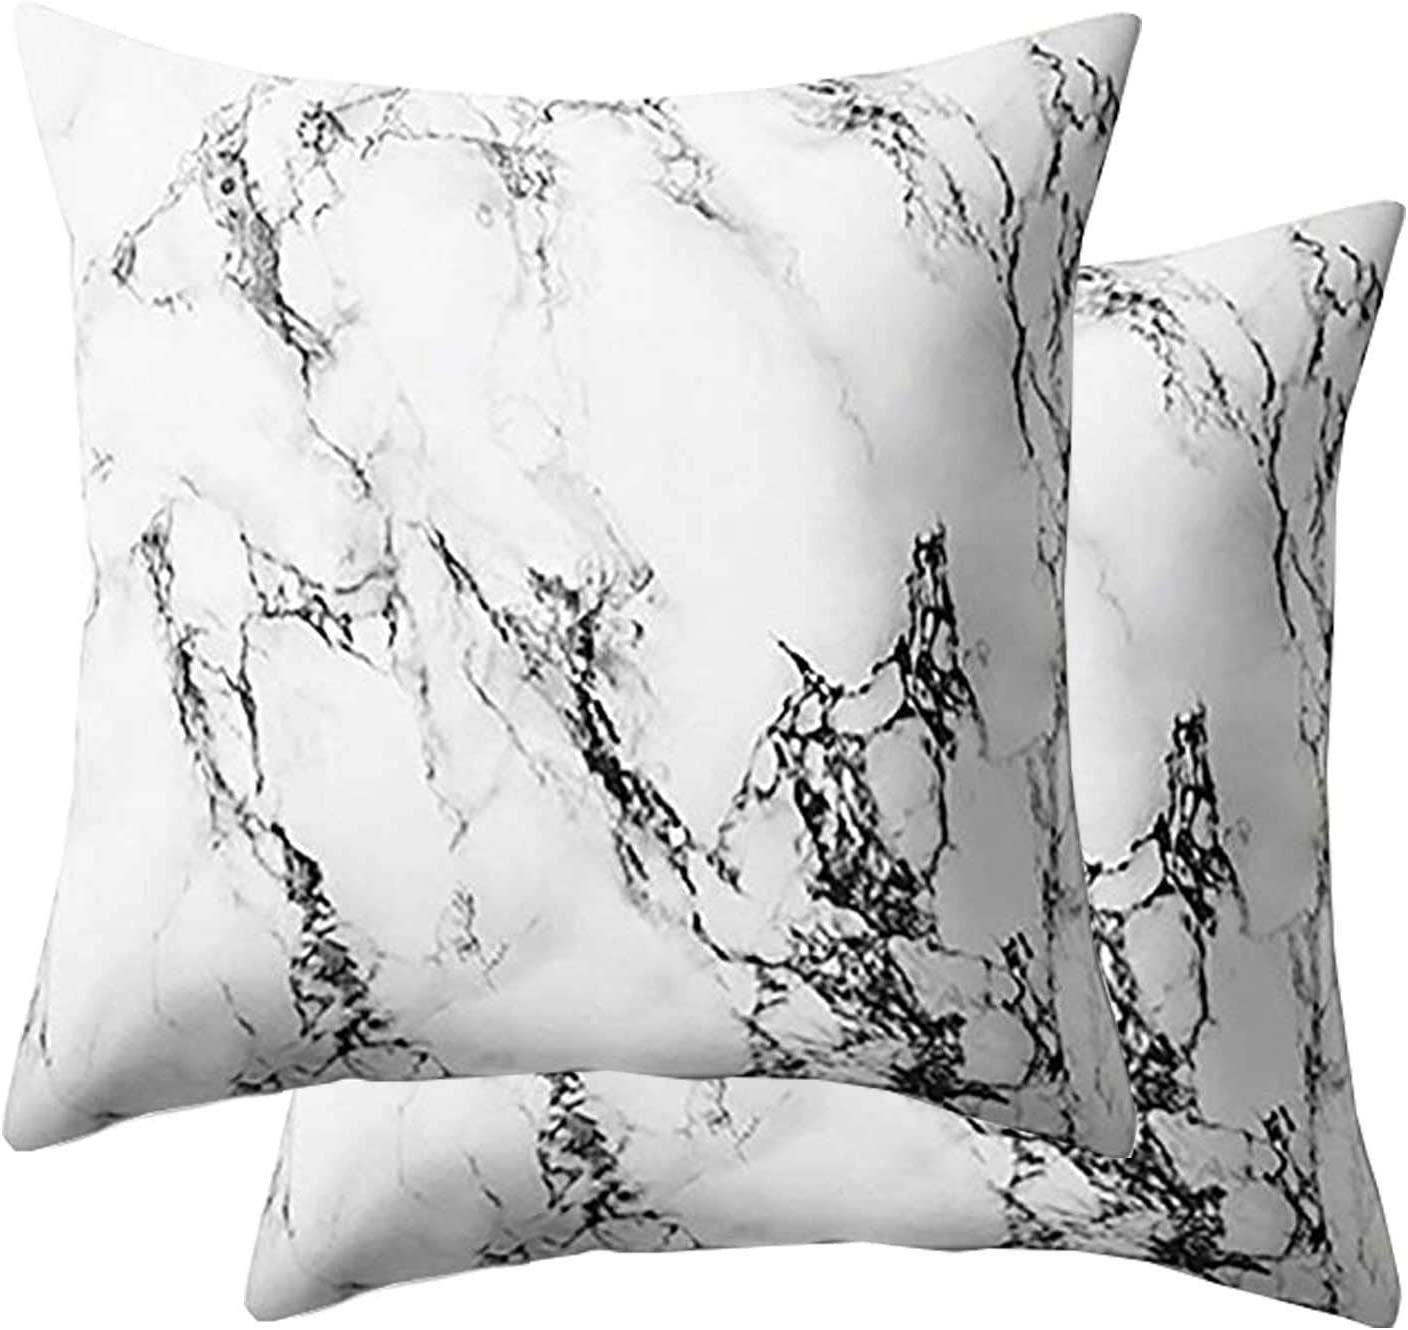 Marble Throw Pillow Case 18 inch - Soft Decorative Square Throw Pillow Covers Cushion Case for Bed Bedroom Decor Decorative 45 x 45 cm, Set of 2, Black and White Gray